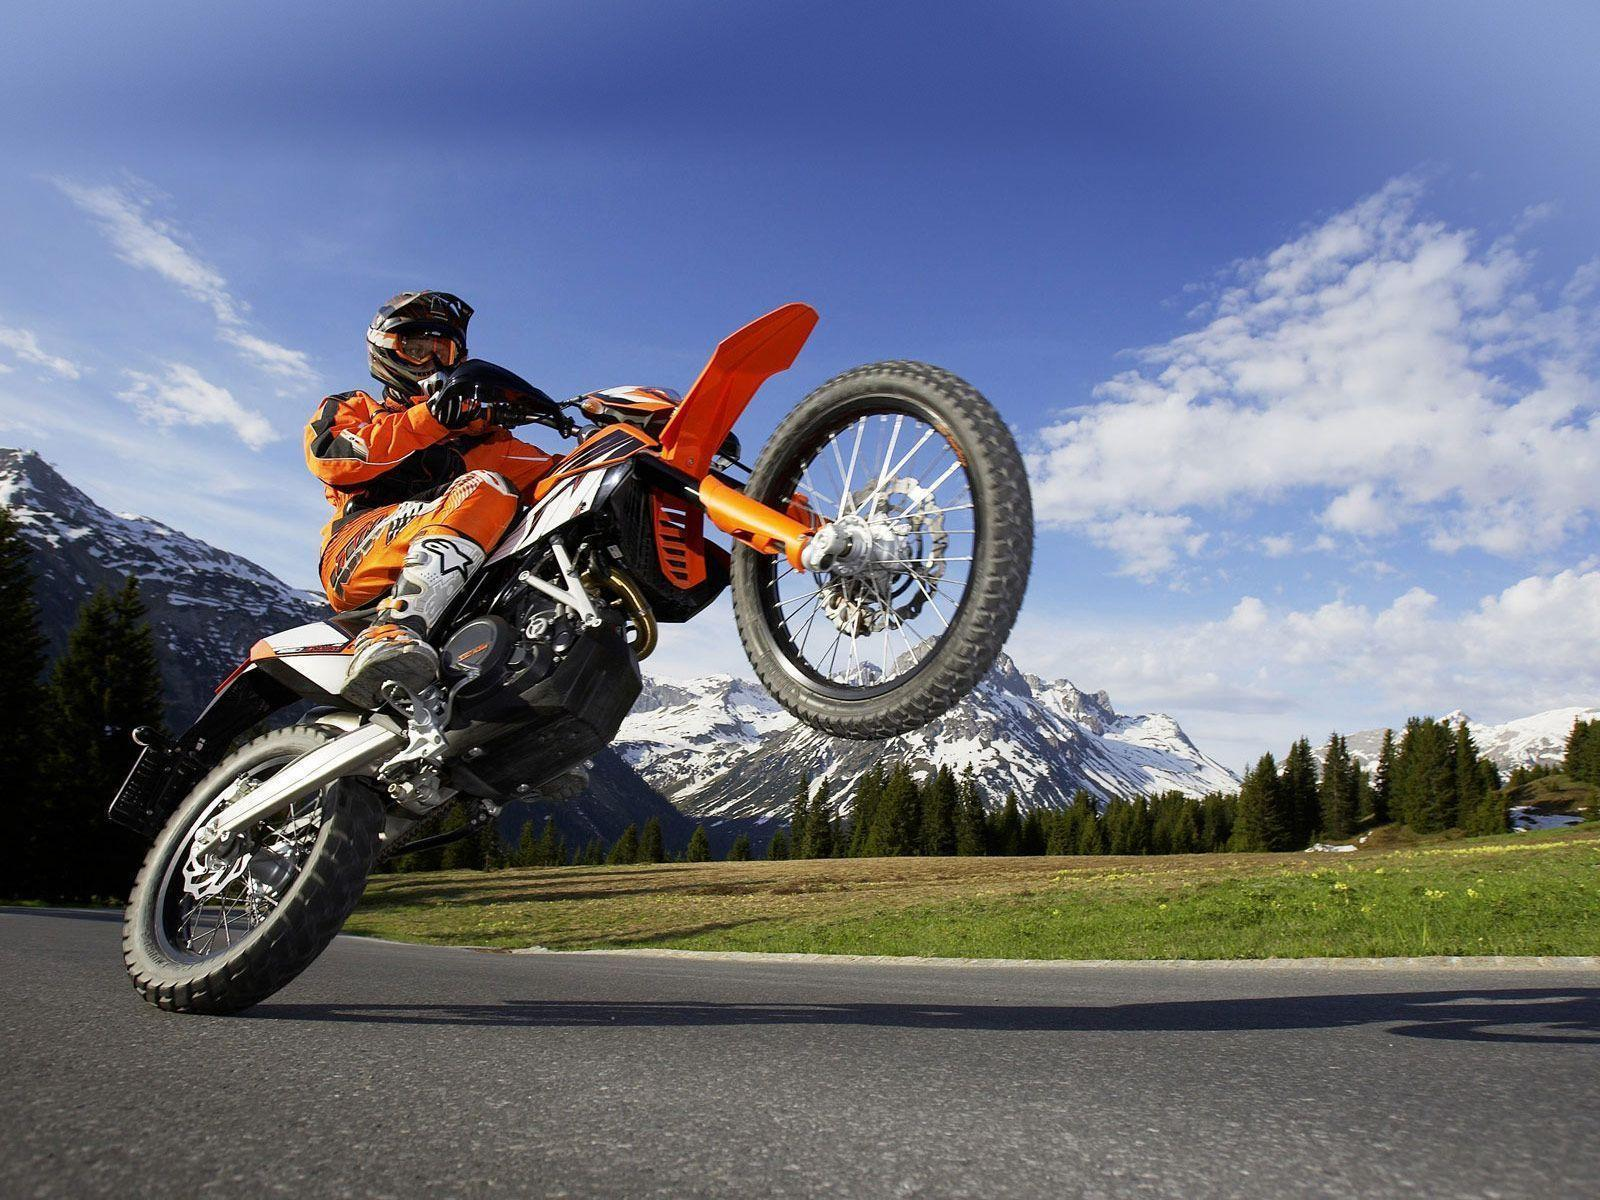 Ktm Wallpapers: Free Download Ktm Exc Review Hd Wallpapers